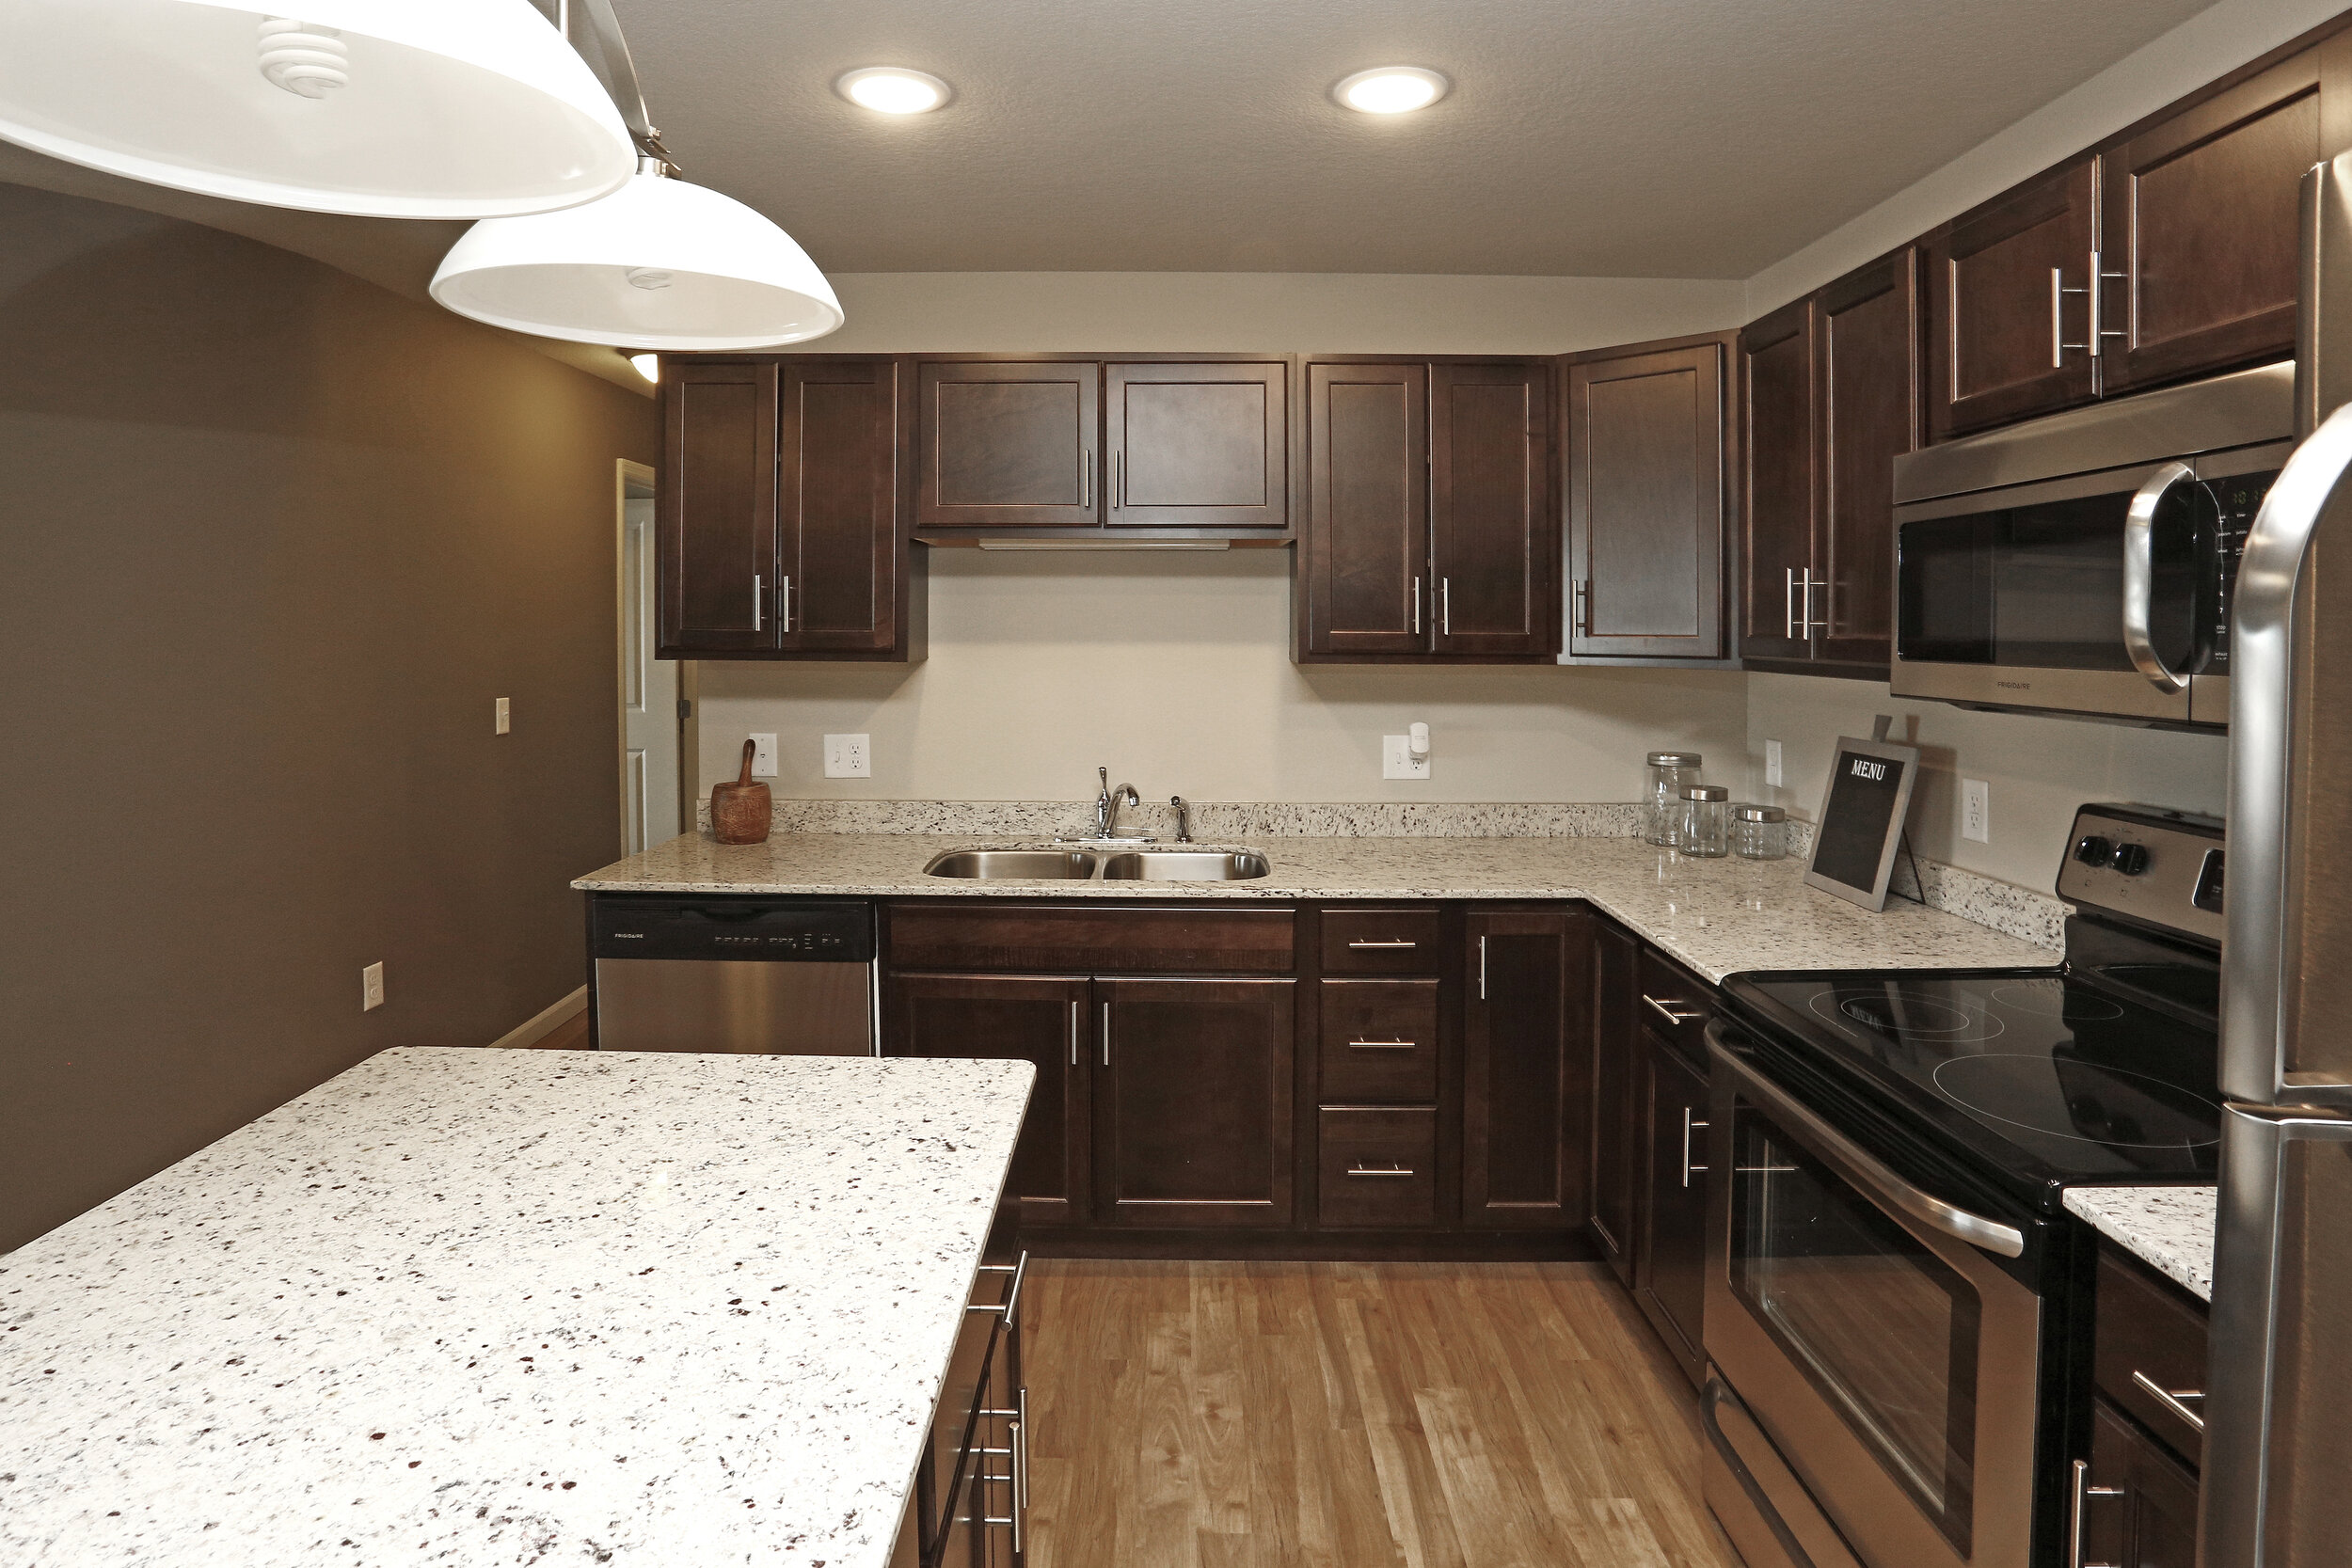 02 Spacious Kitchens With Tons of Cabinet Space.jpg